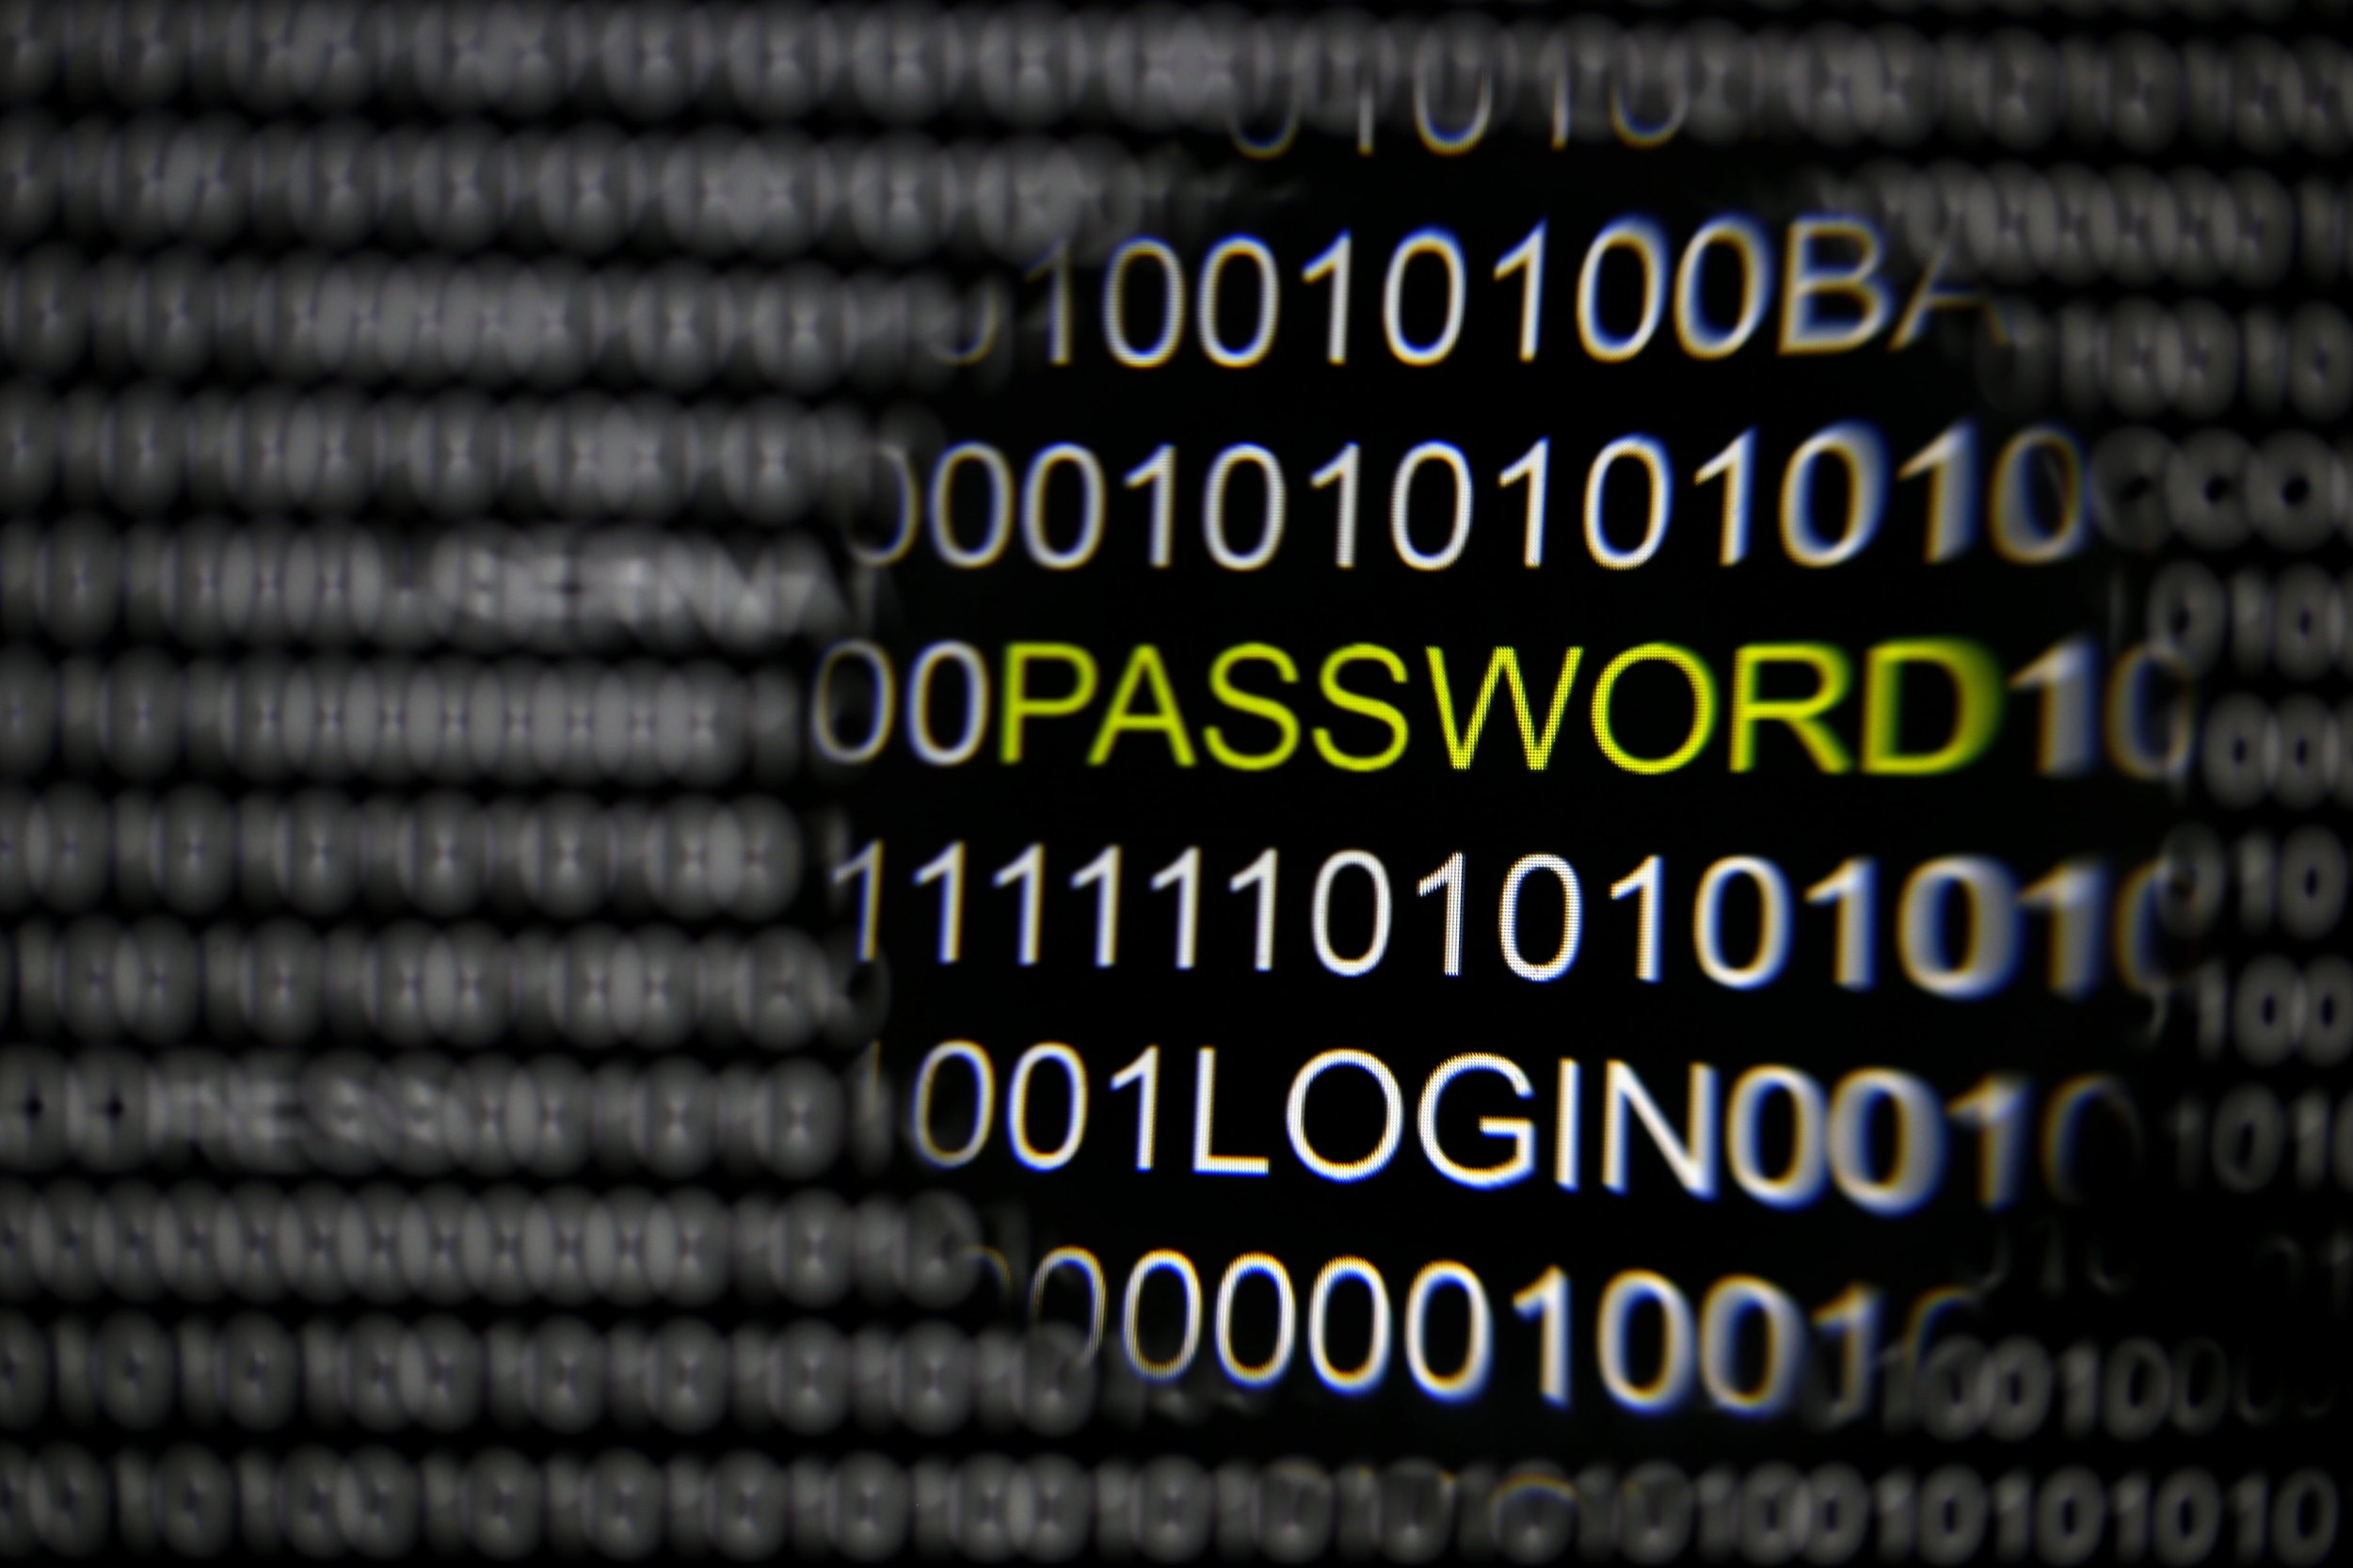 Hackers target passwords